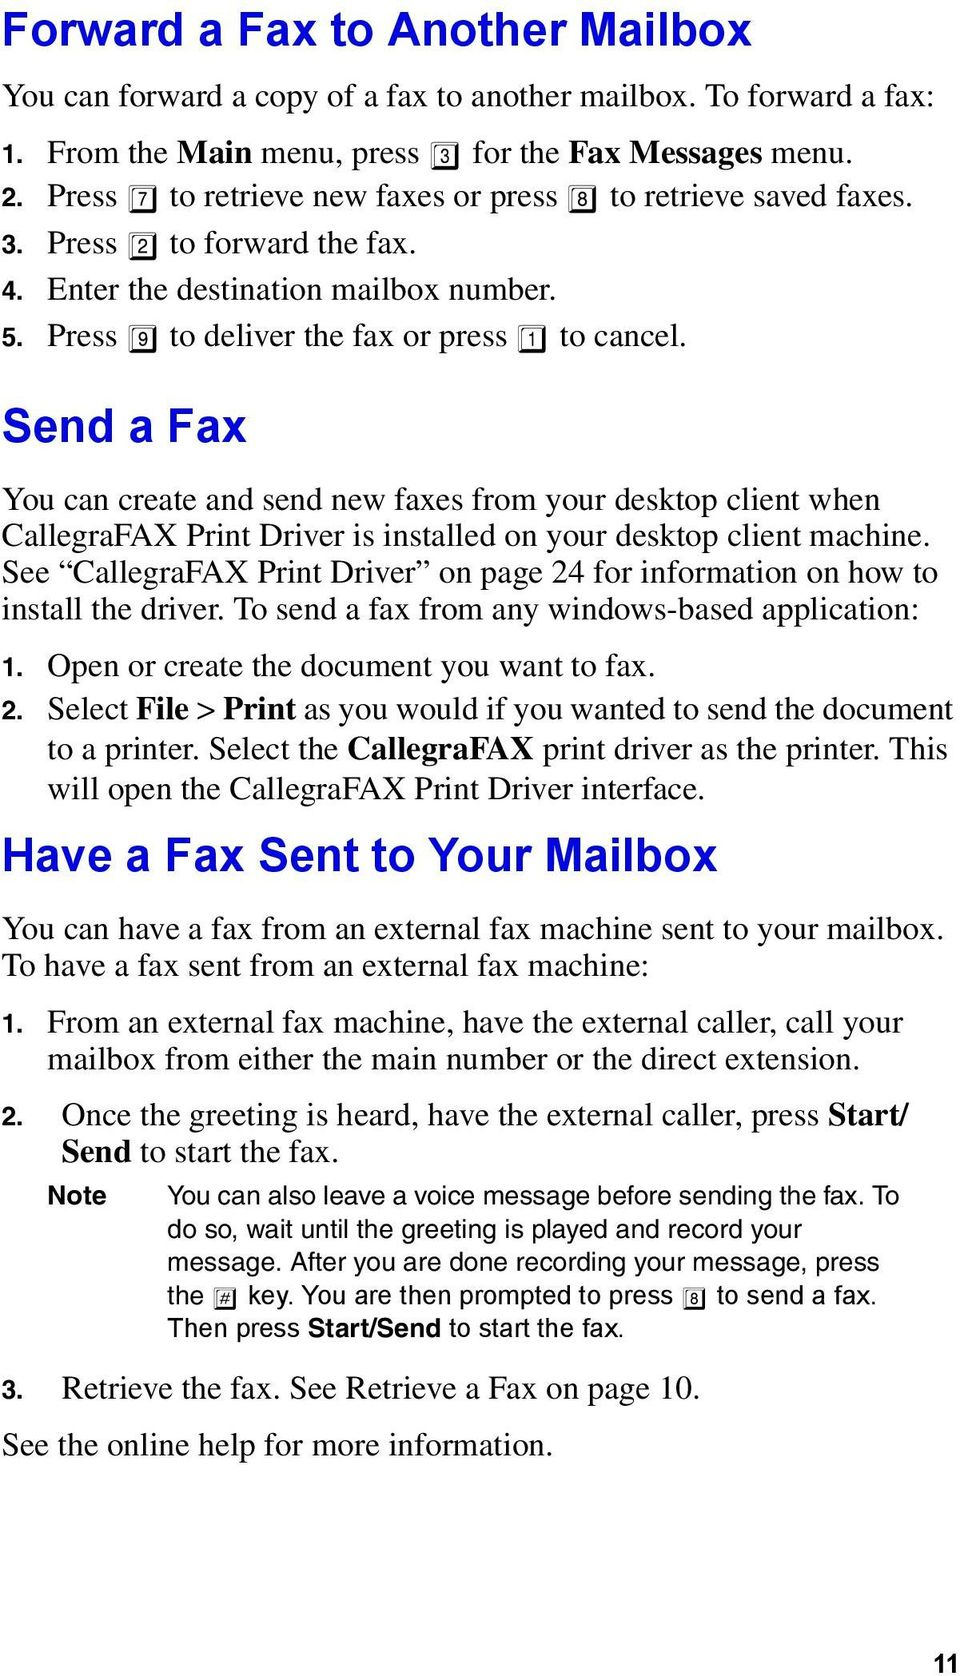 Send a Fax You can create and send new faxes from your desktop client when CallegraFAX Print Driver is installed on your desktop client machine.